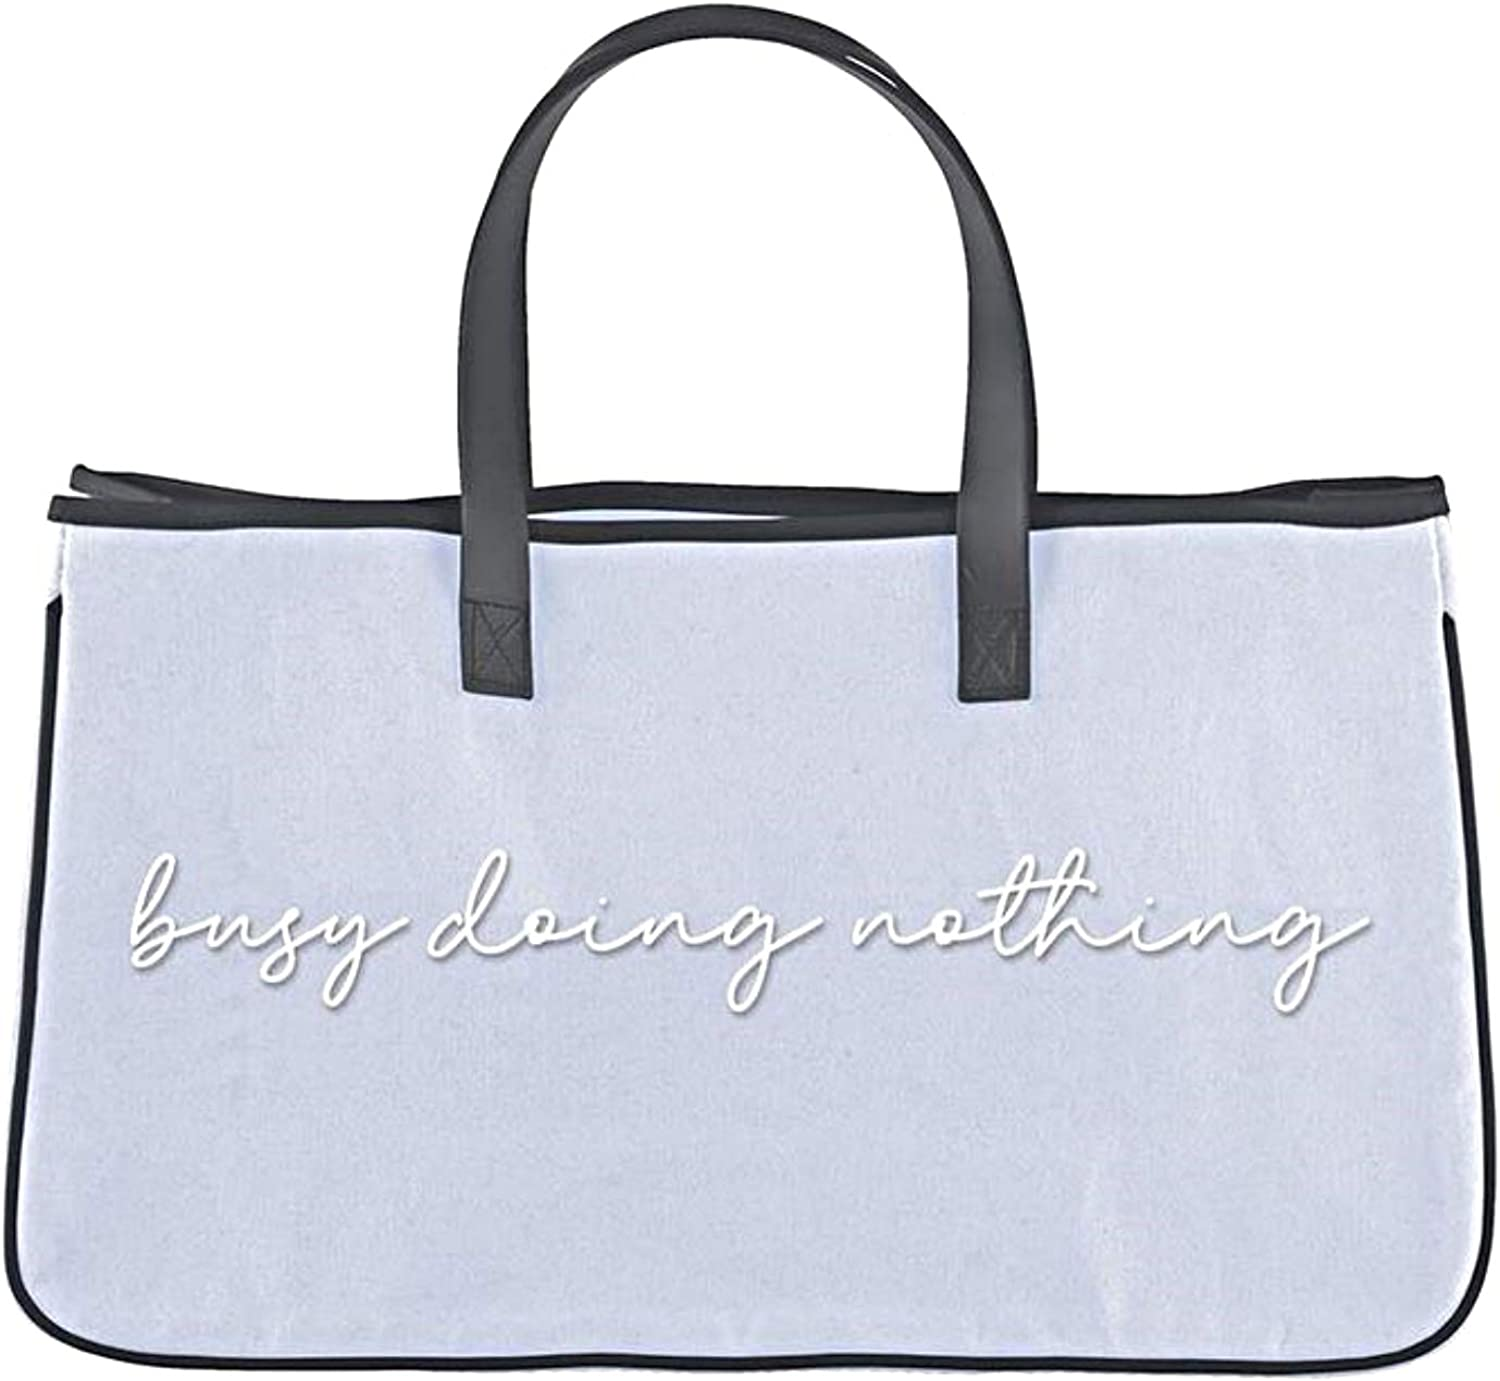 Light shop Blue Canvas Tote Bag Busy Large Doing Nothing for Purse Sales results No. 1